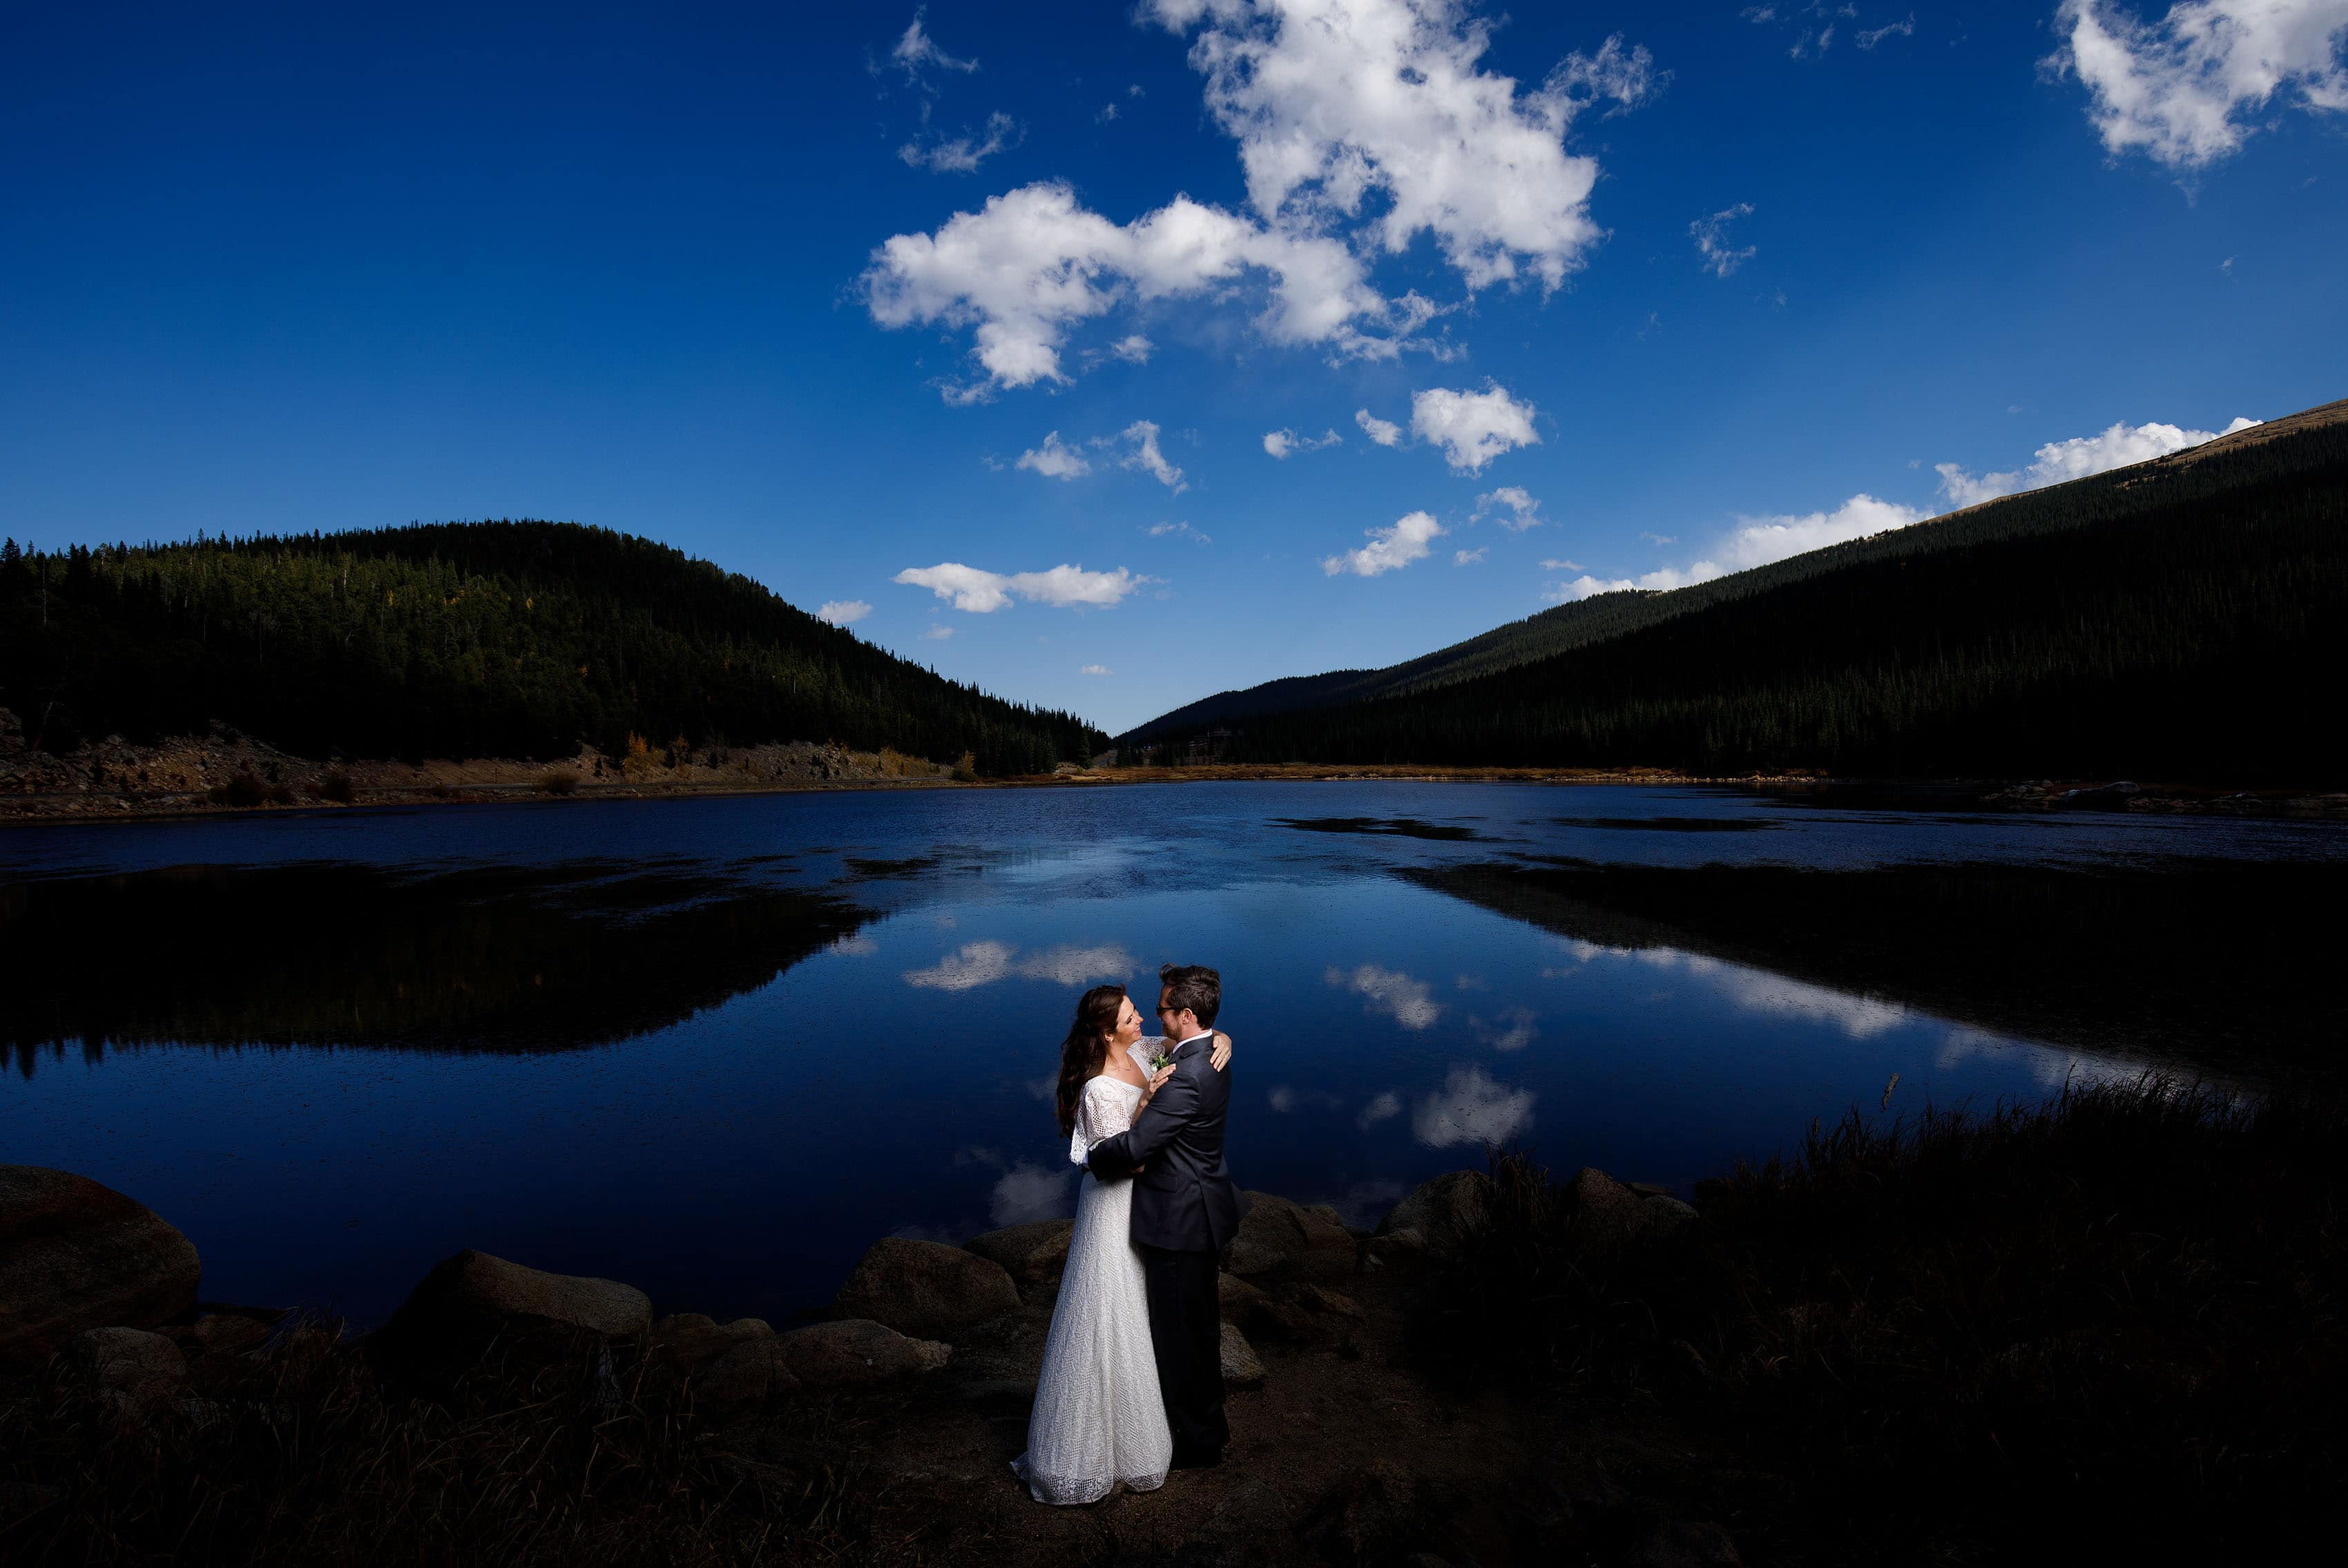 The couple poses at Echo Lake near Mount Evans after their fall Blackstone Rivers Ranch wedding in Idaho Springs Colorado